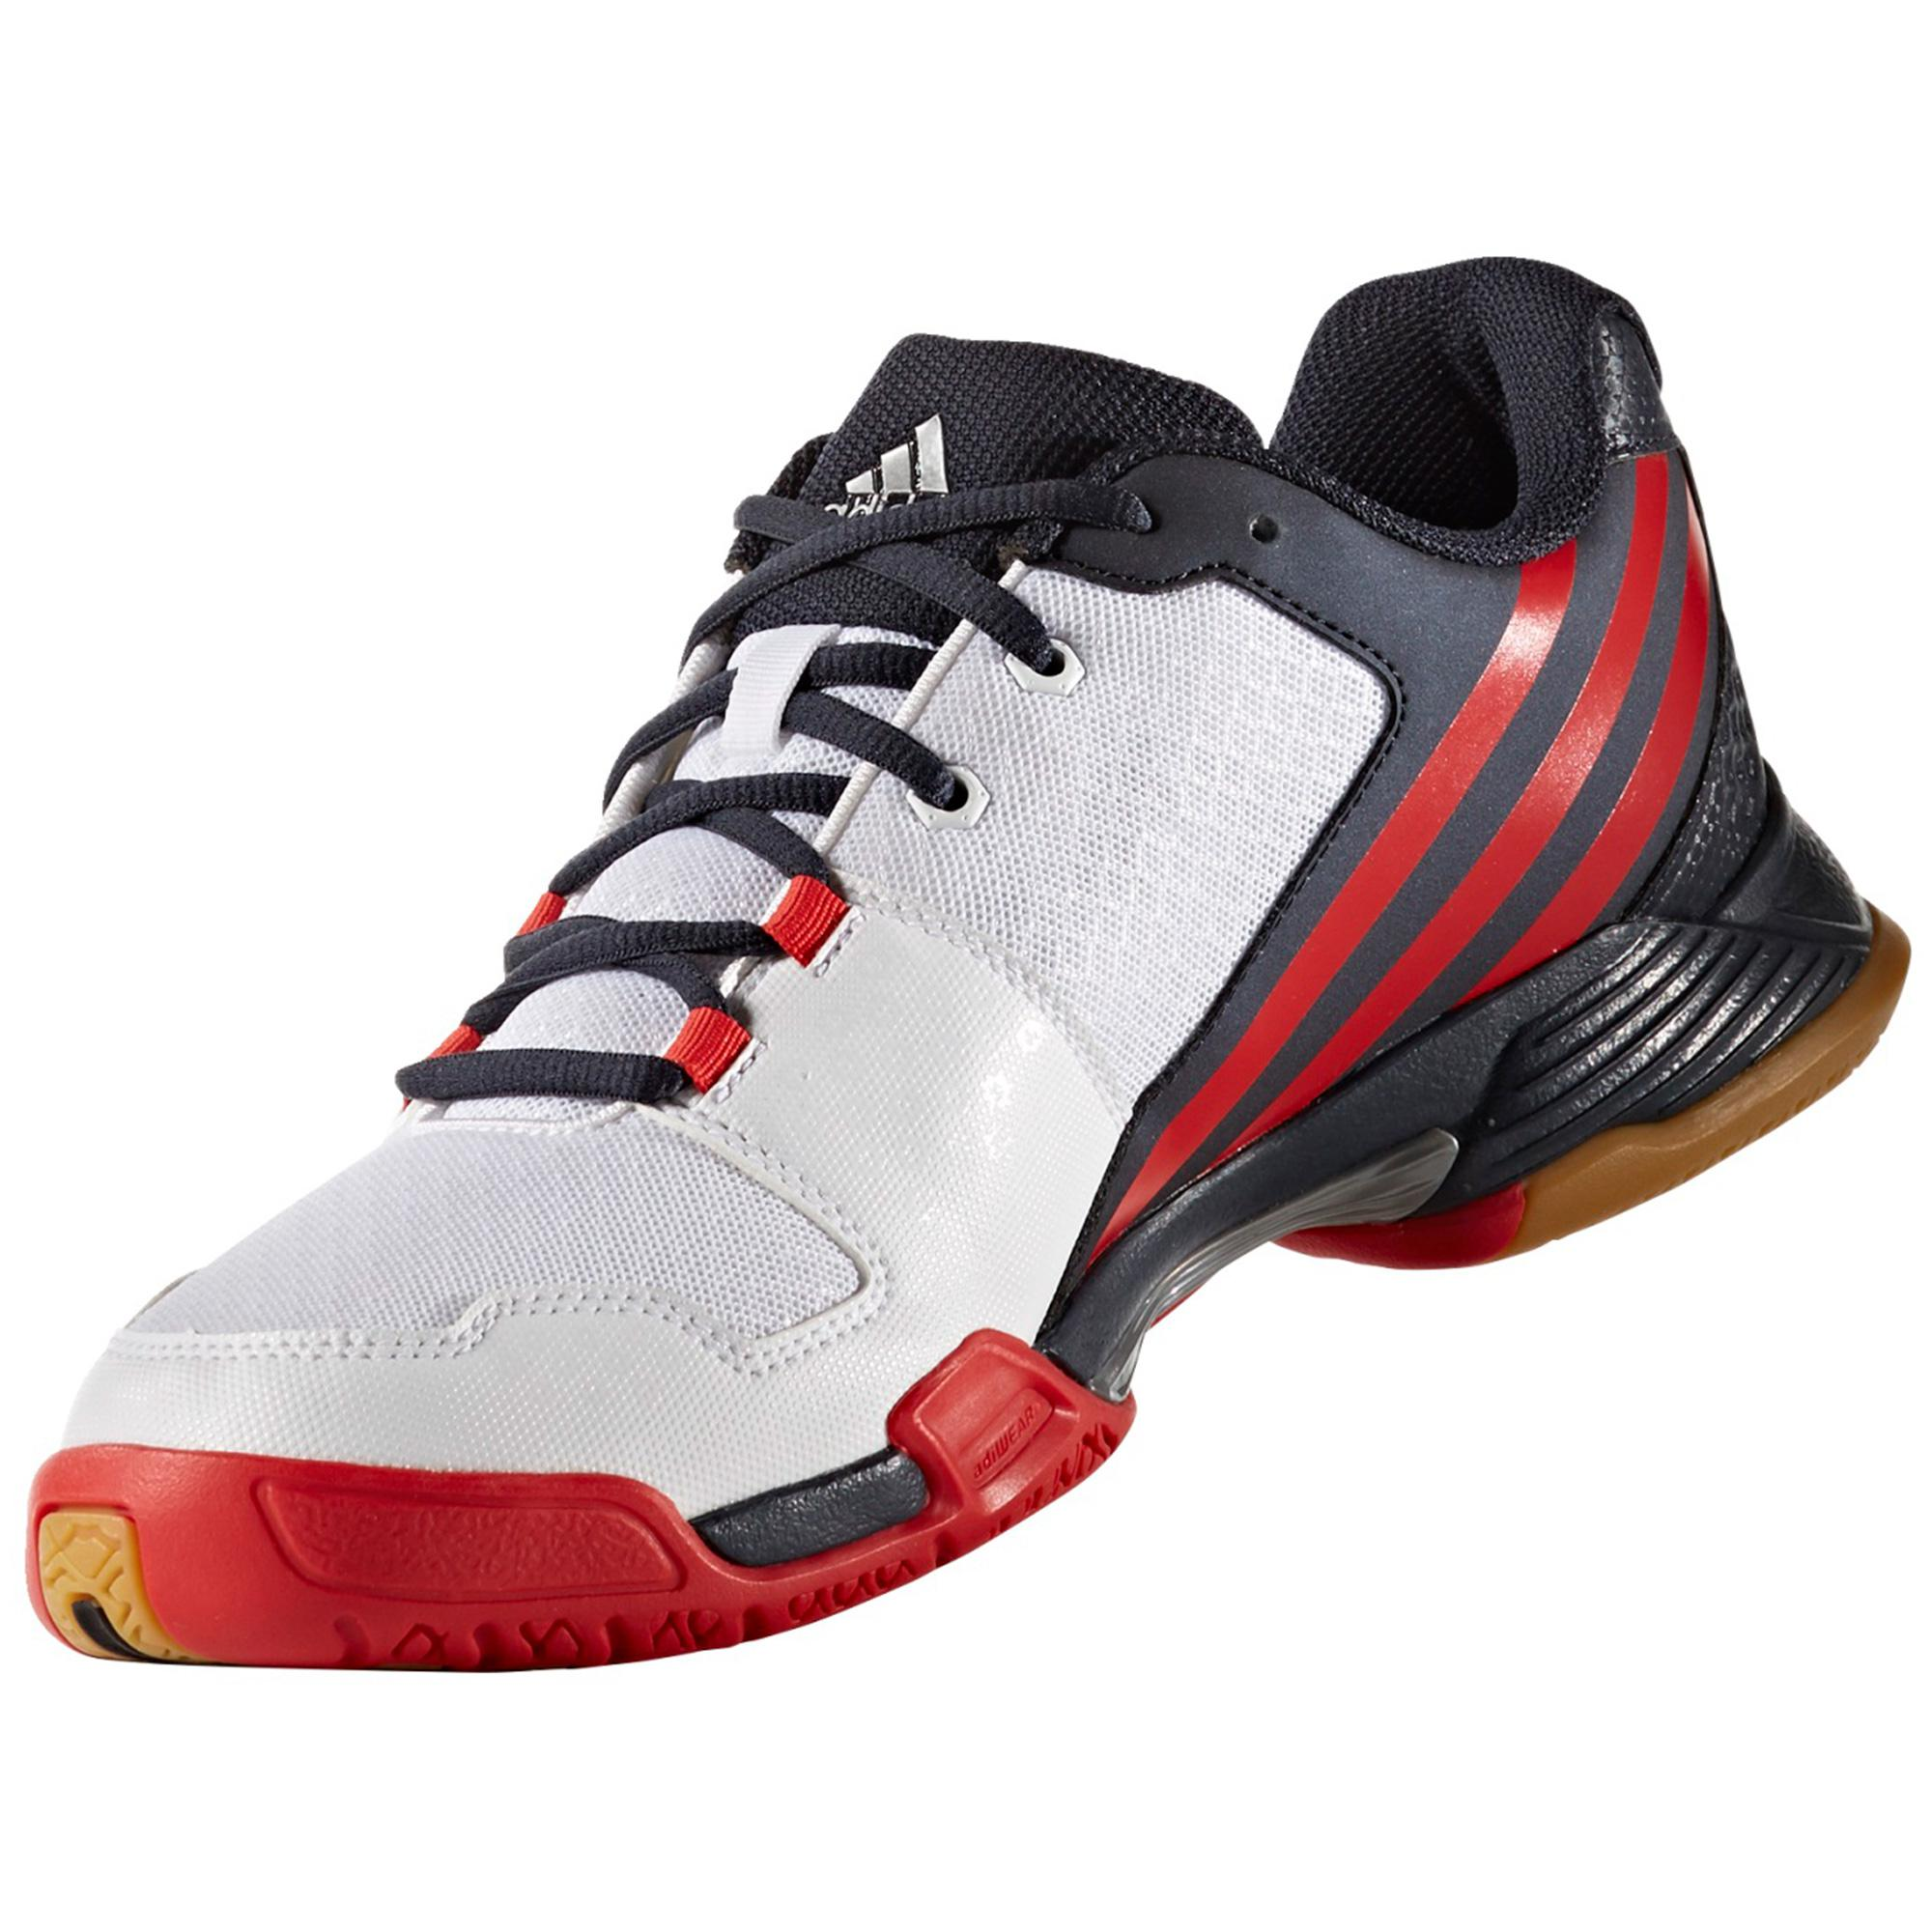 4 White Adidas Volley Indoor Team Mens Shoes wgagUt